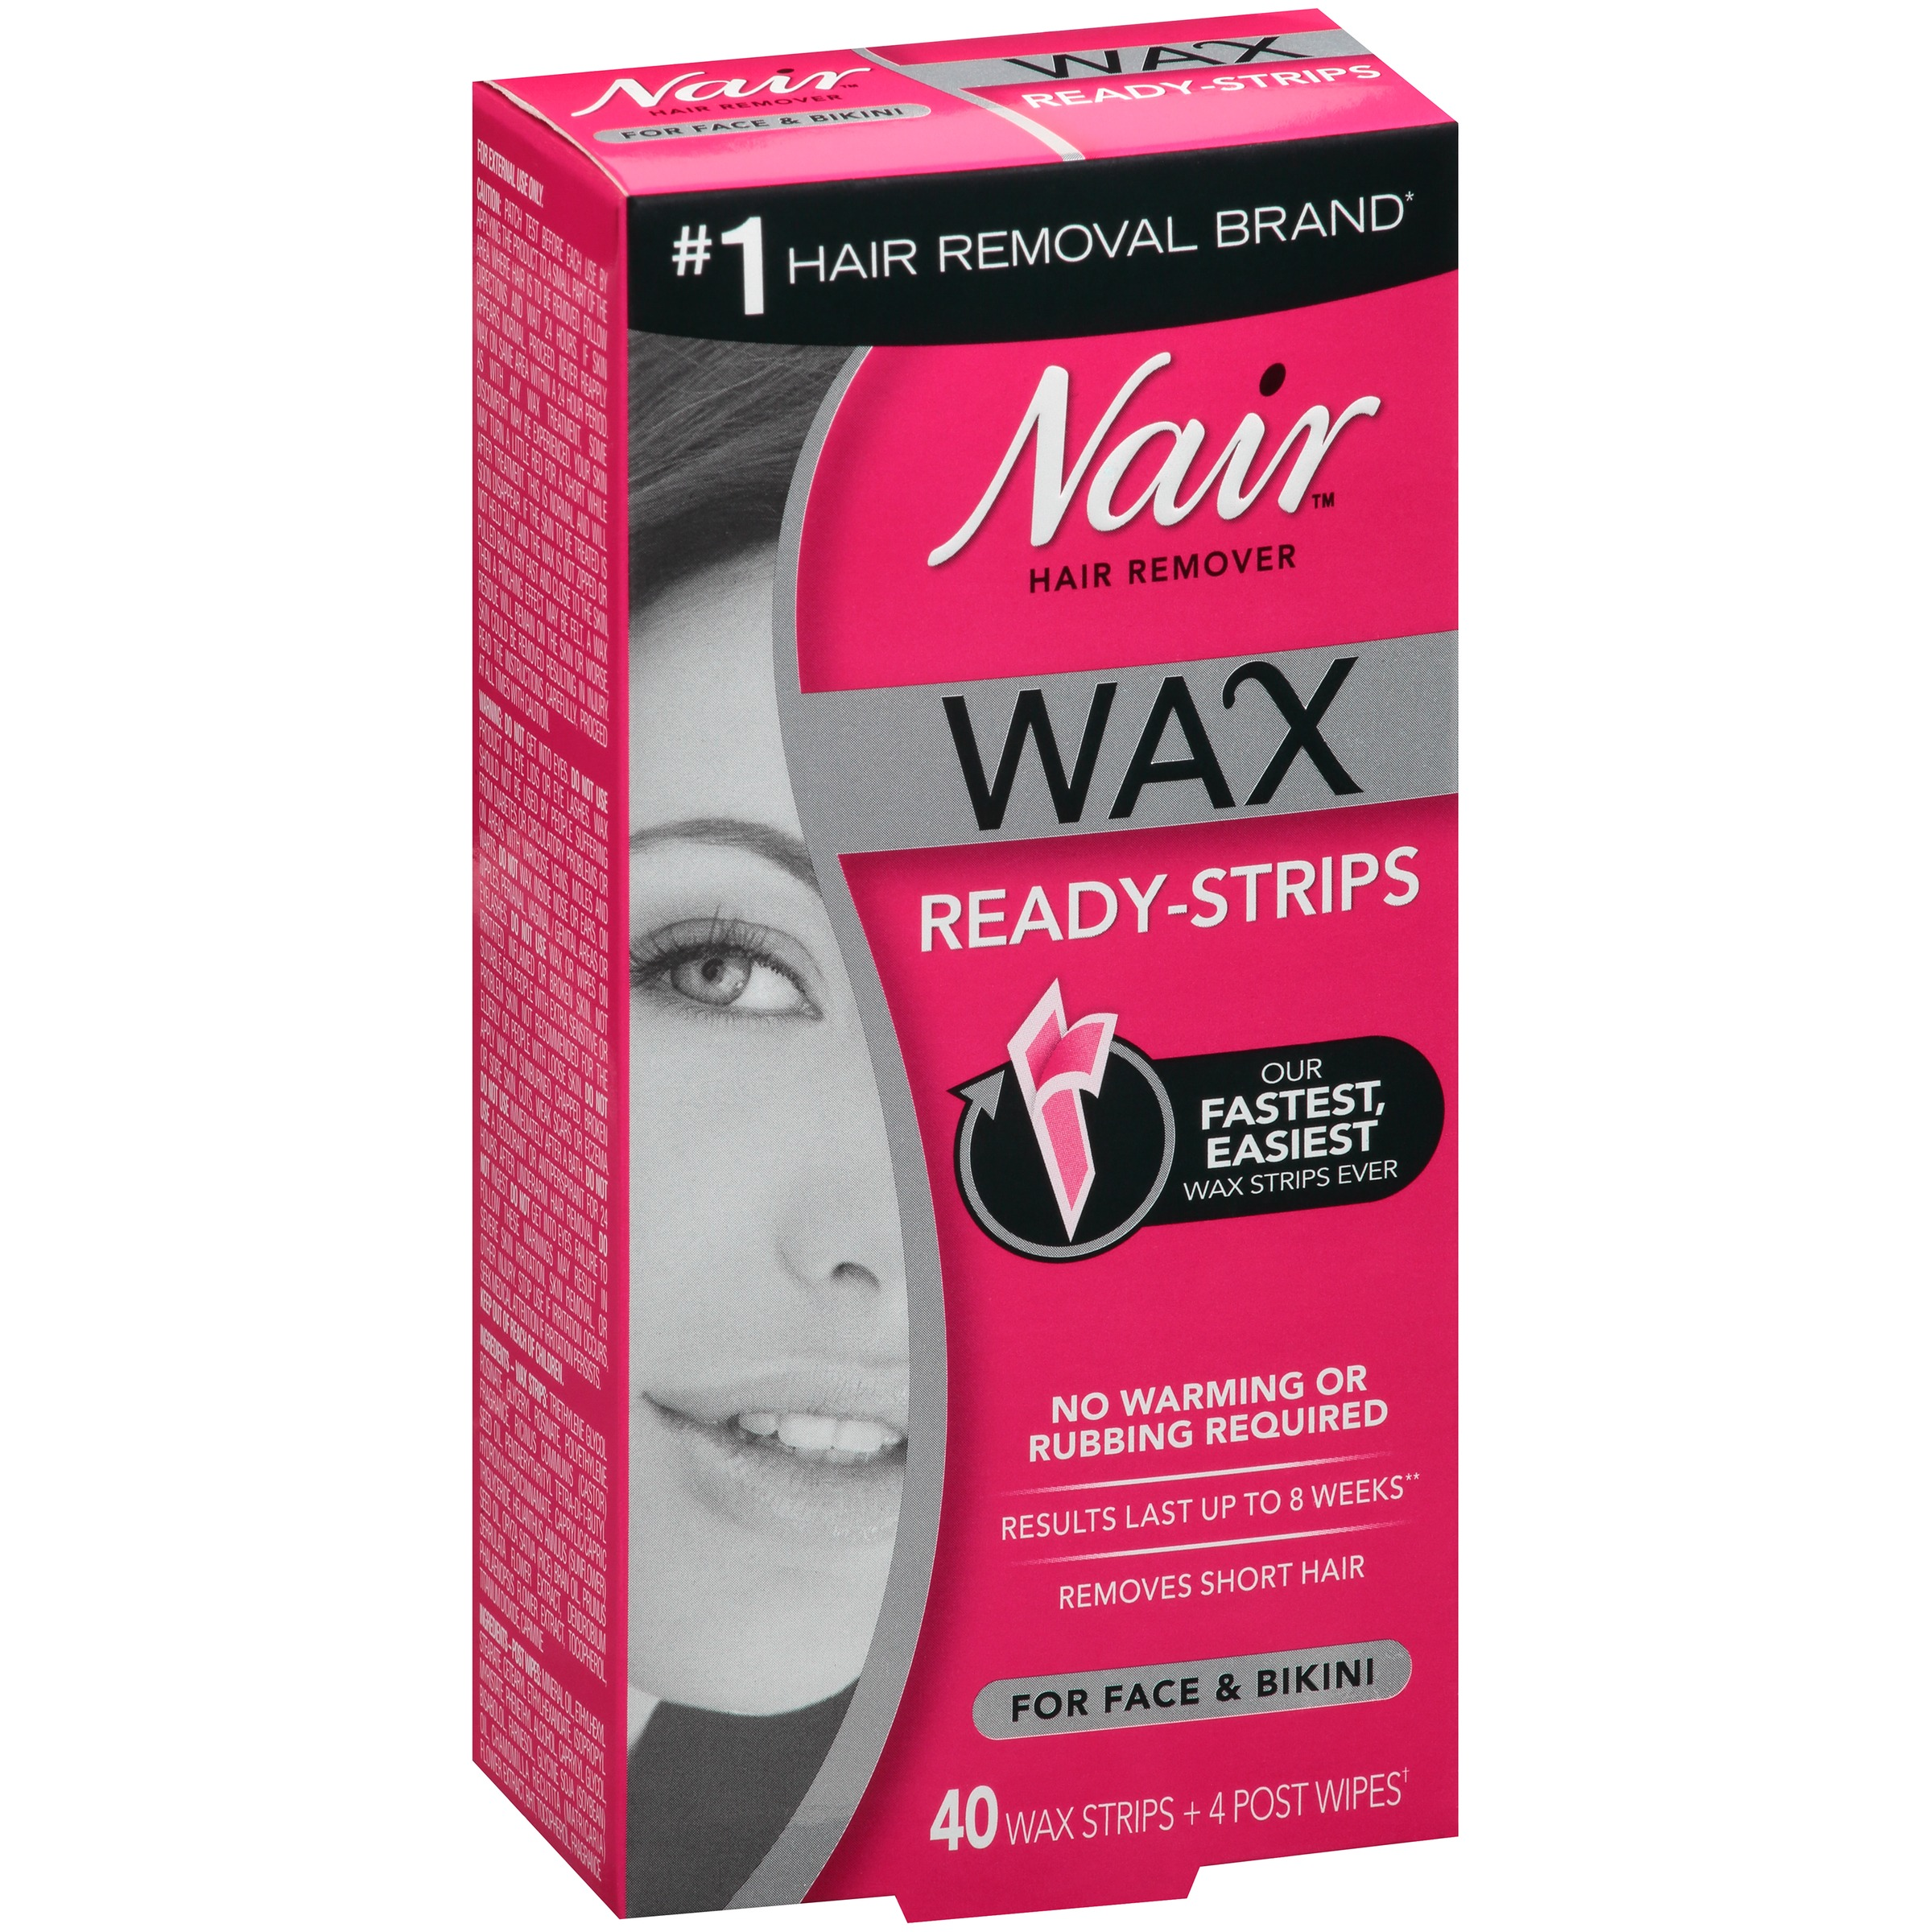 Nair wax ready strips hair remover for face bikini 40 ct box nair wax ready strips hair remover for face bikini 40 ct box walmart solutioingenieria Image collections